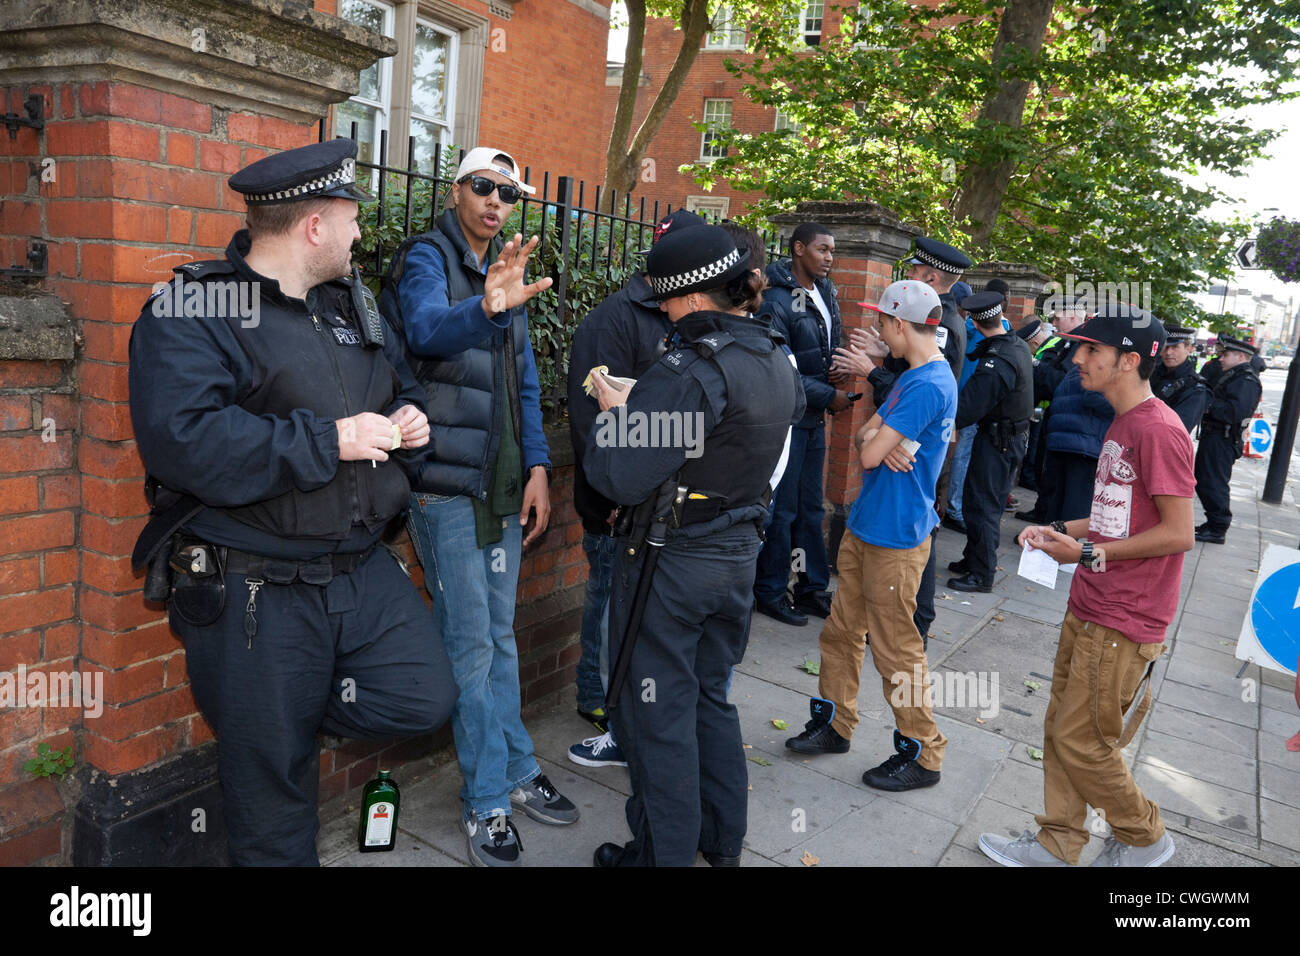 Metropolitan police officers stop and search a group of youths at the Notting Hill Carnival 2012, London, England, - Stock Image